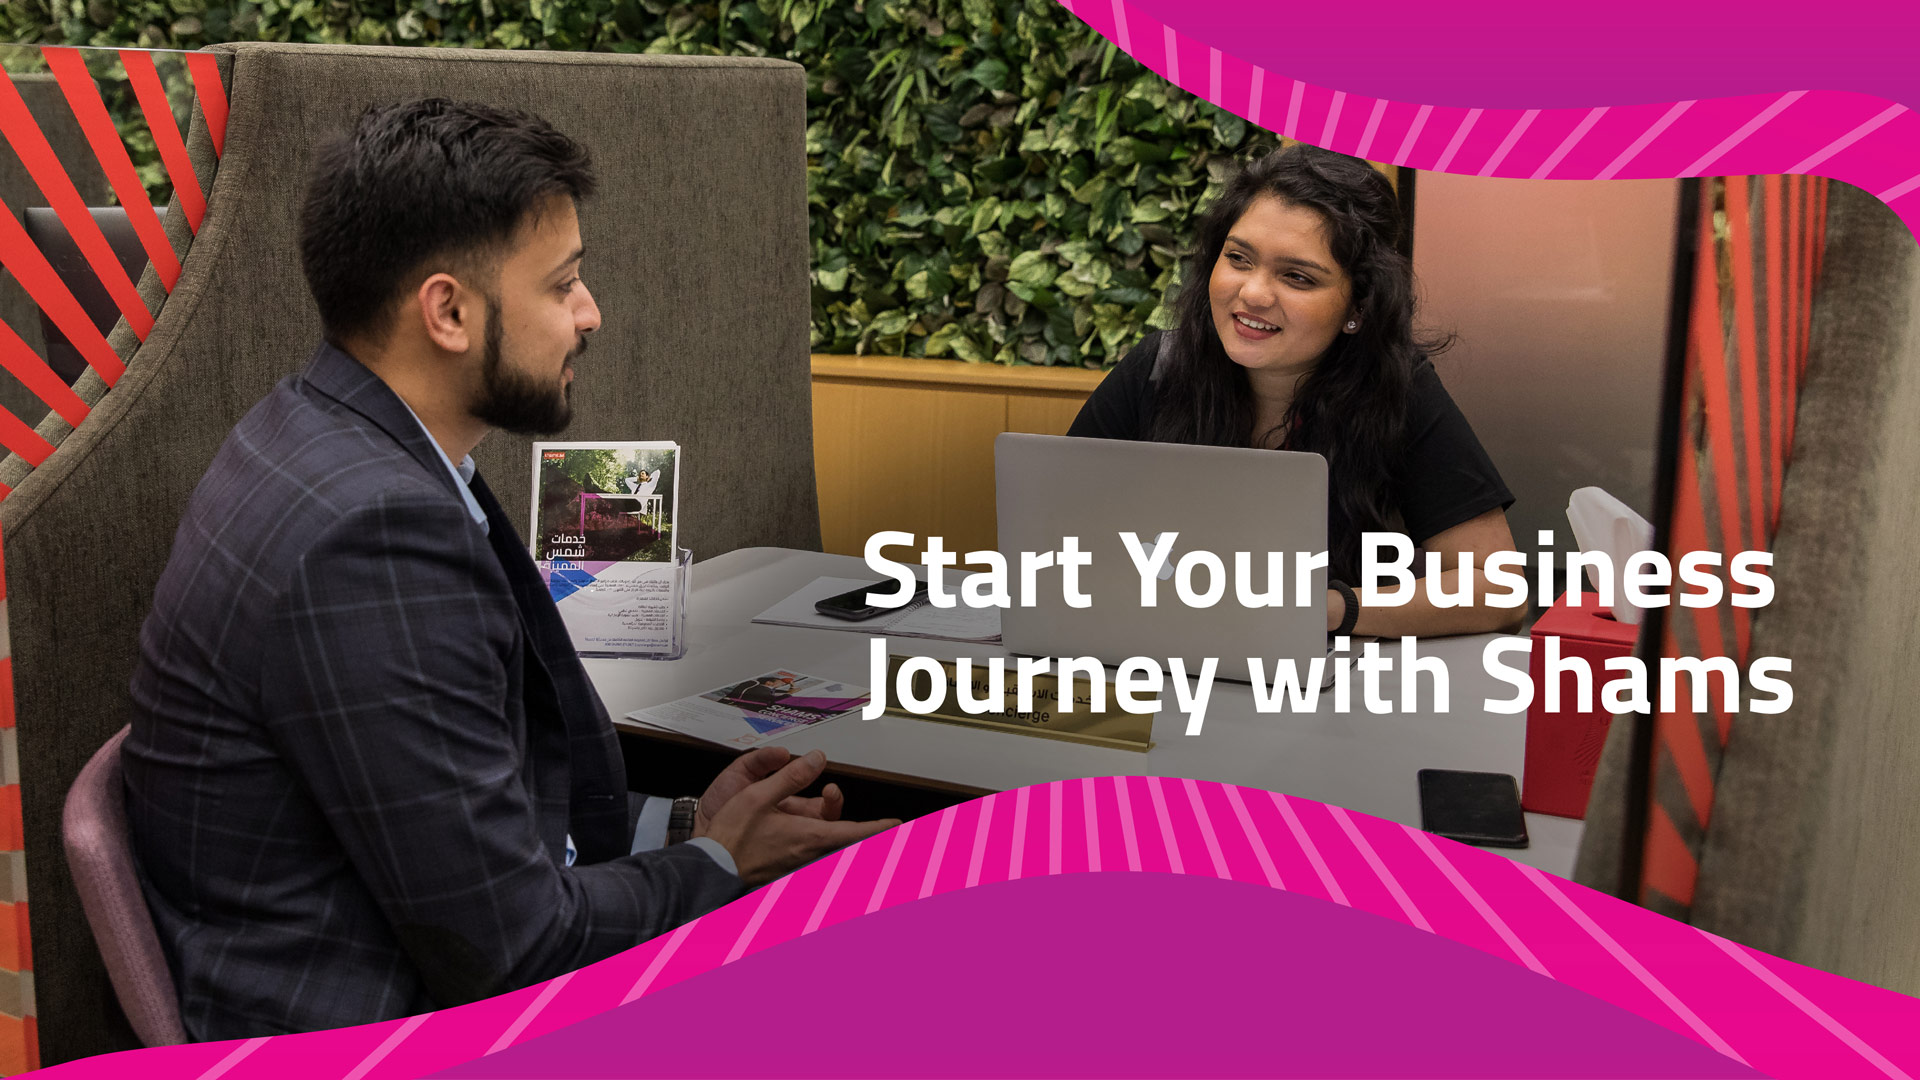 New Business Setup Process in Sharjah | Free Zone Company License Application - Shams